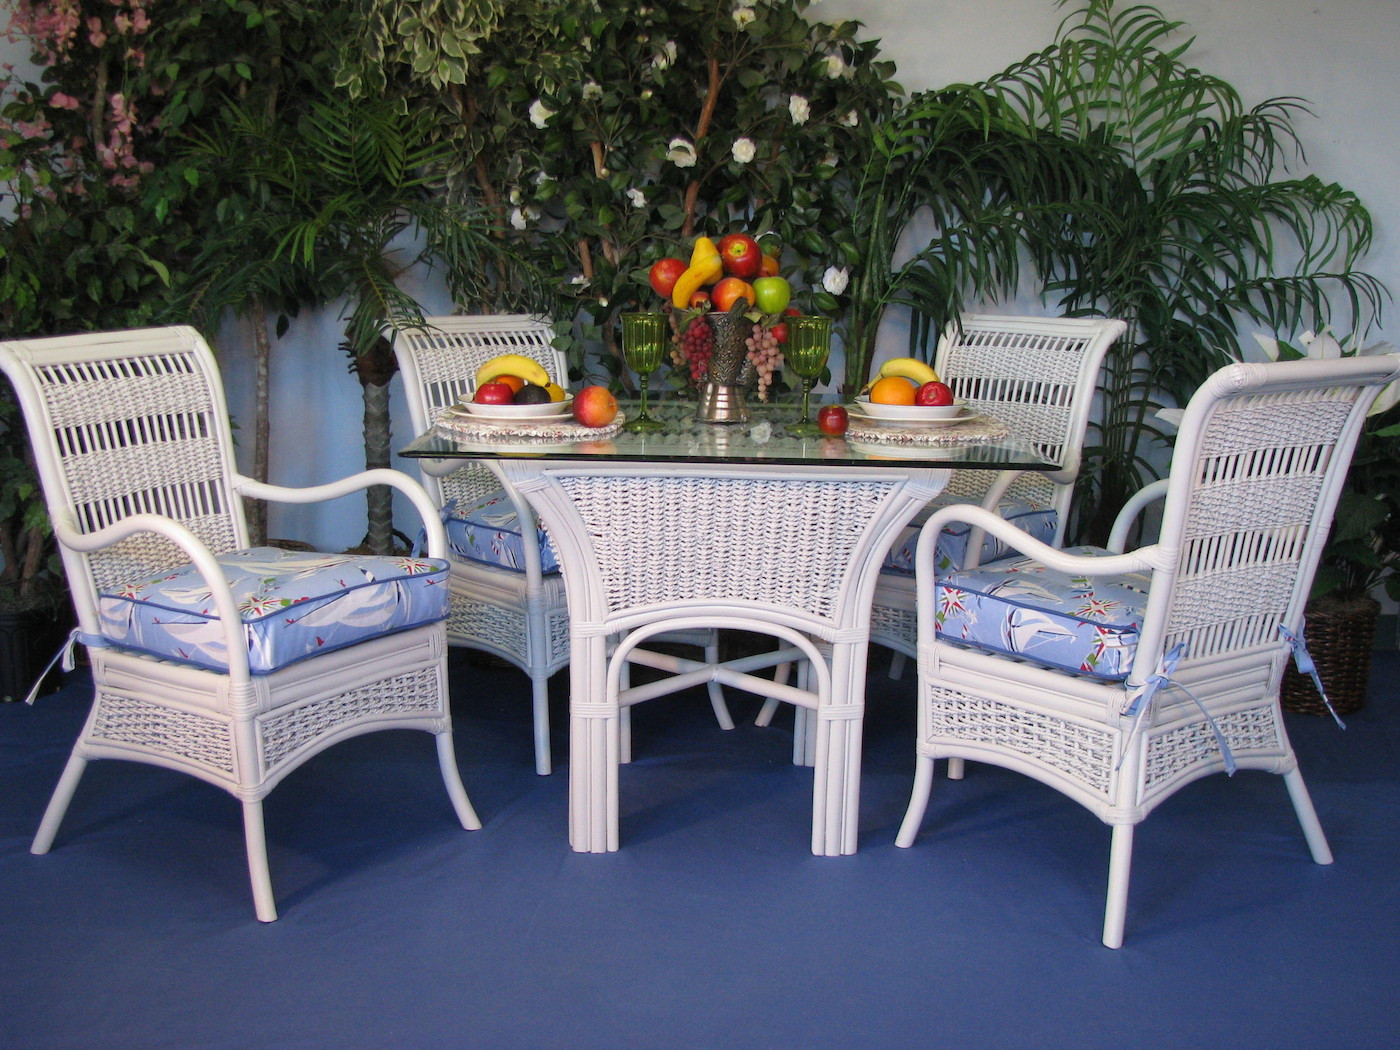 Best ideas about Rattan Dining Set . Save or Pin Ashford Rattan Dining Set Now.